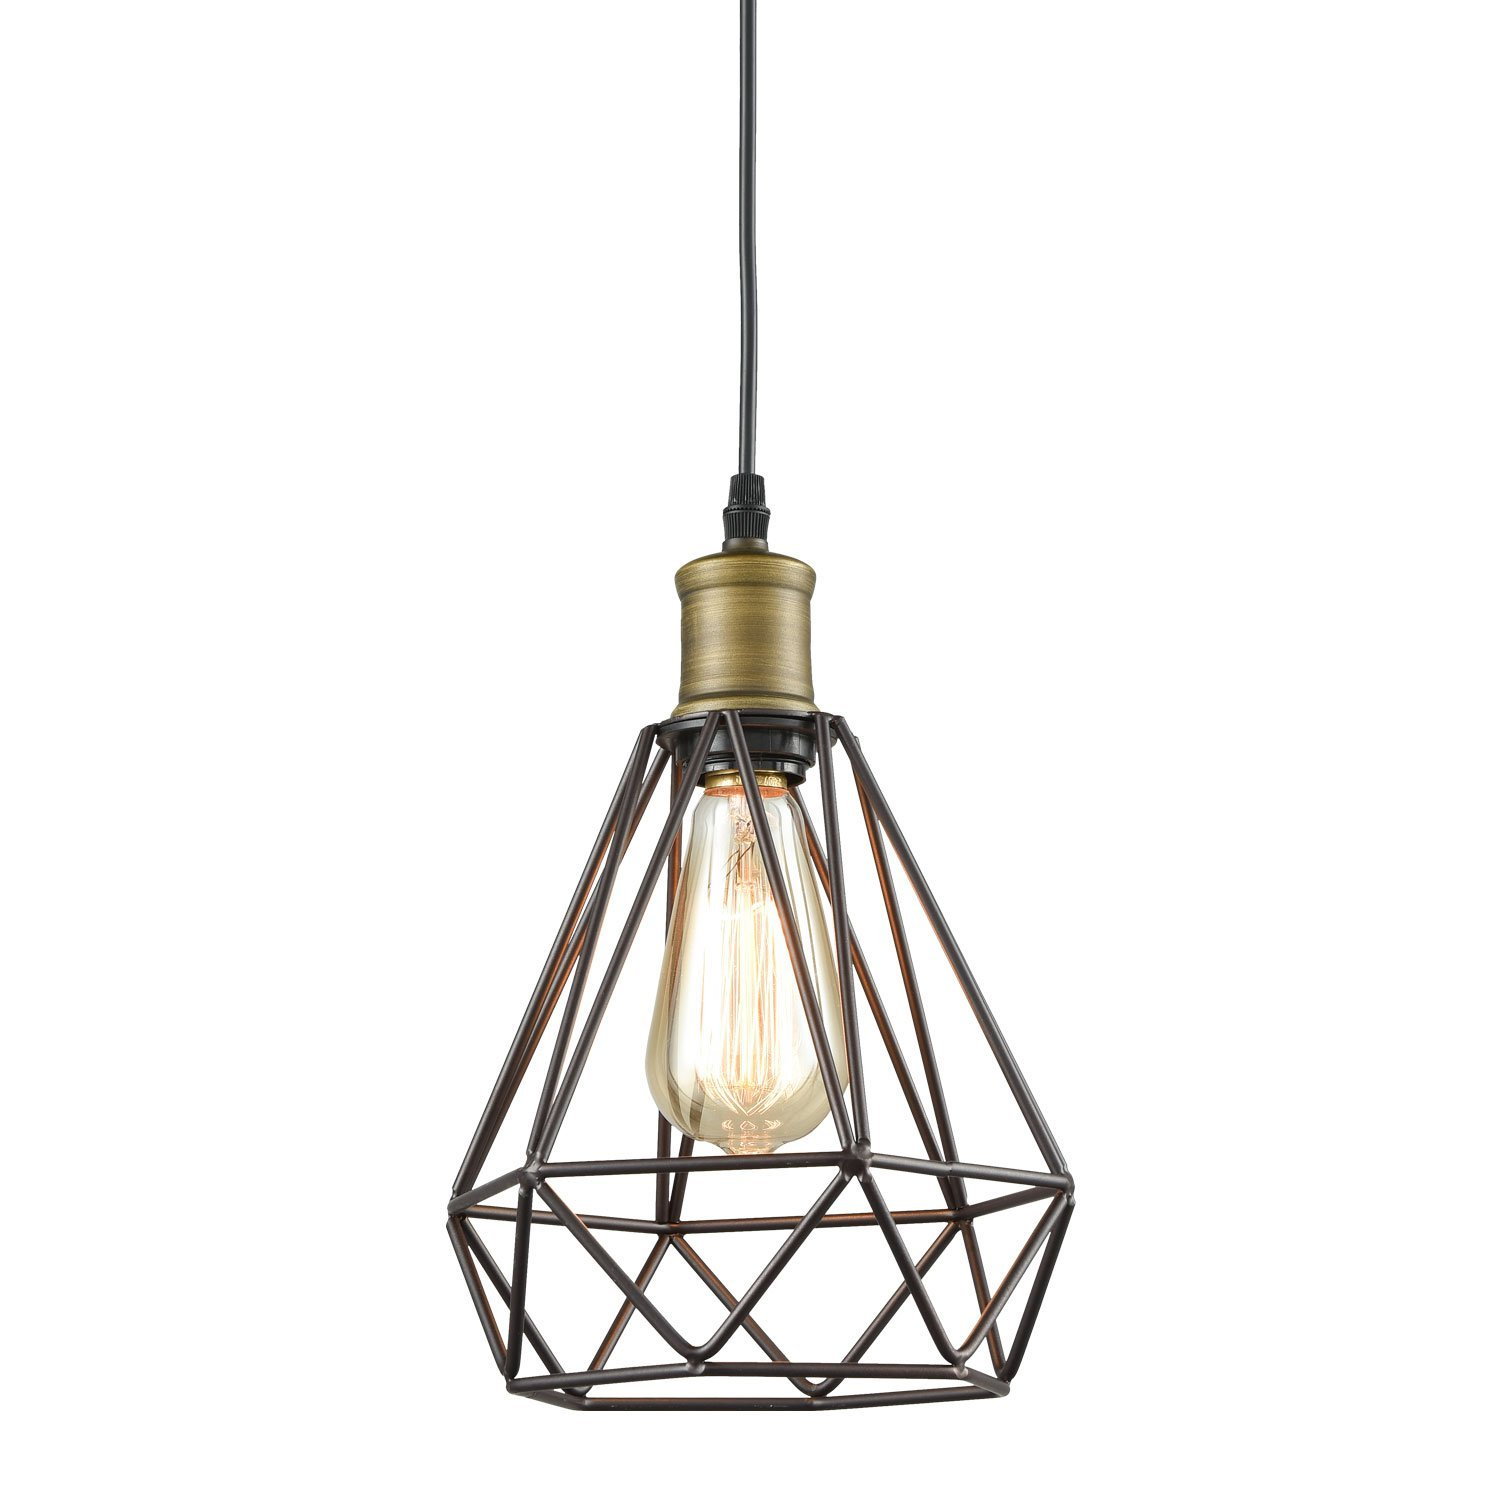 Light Pendants Farmhouse Light Fixtures Under 200 On Amazon